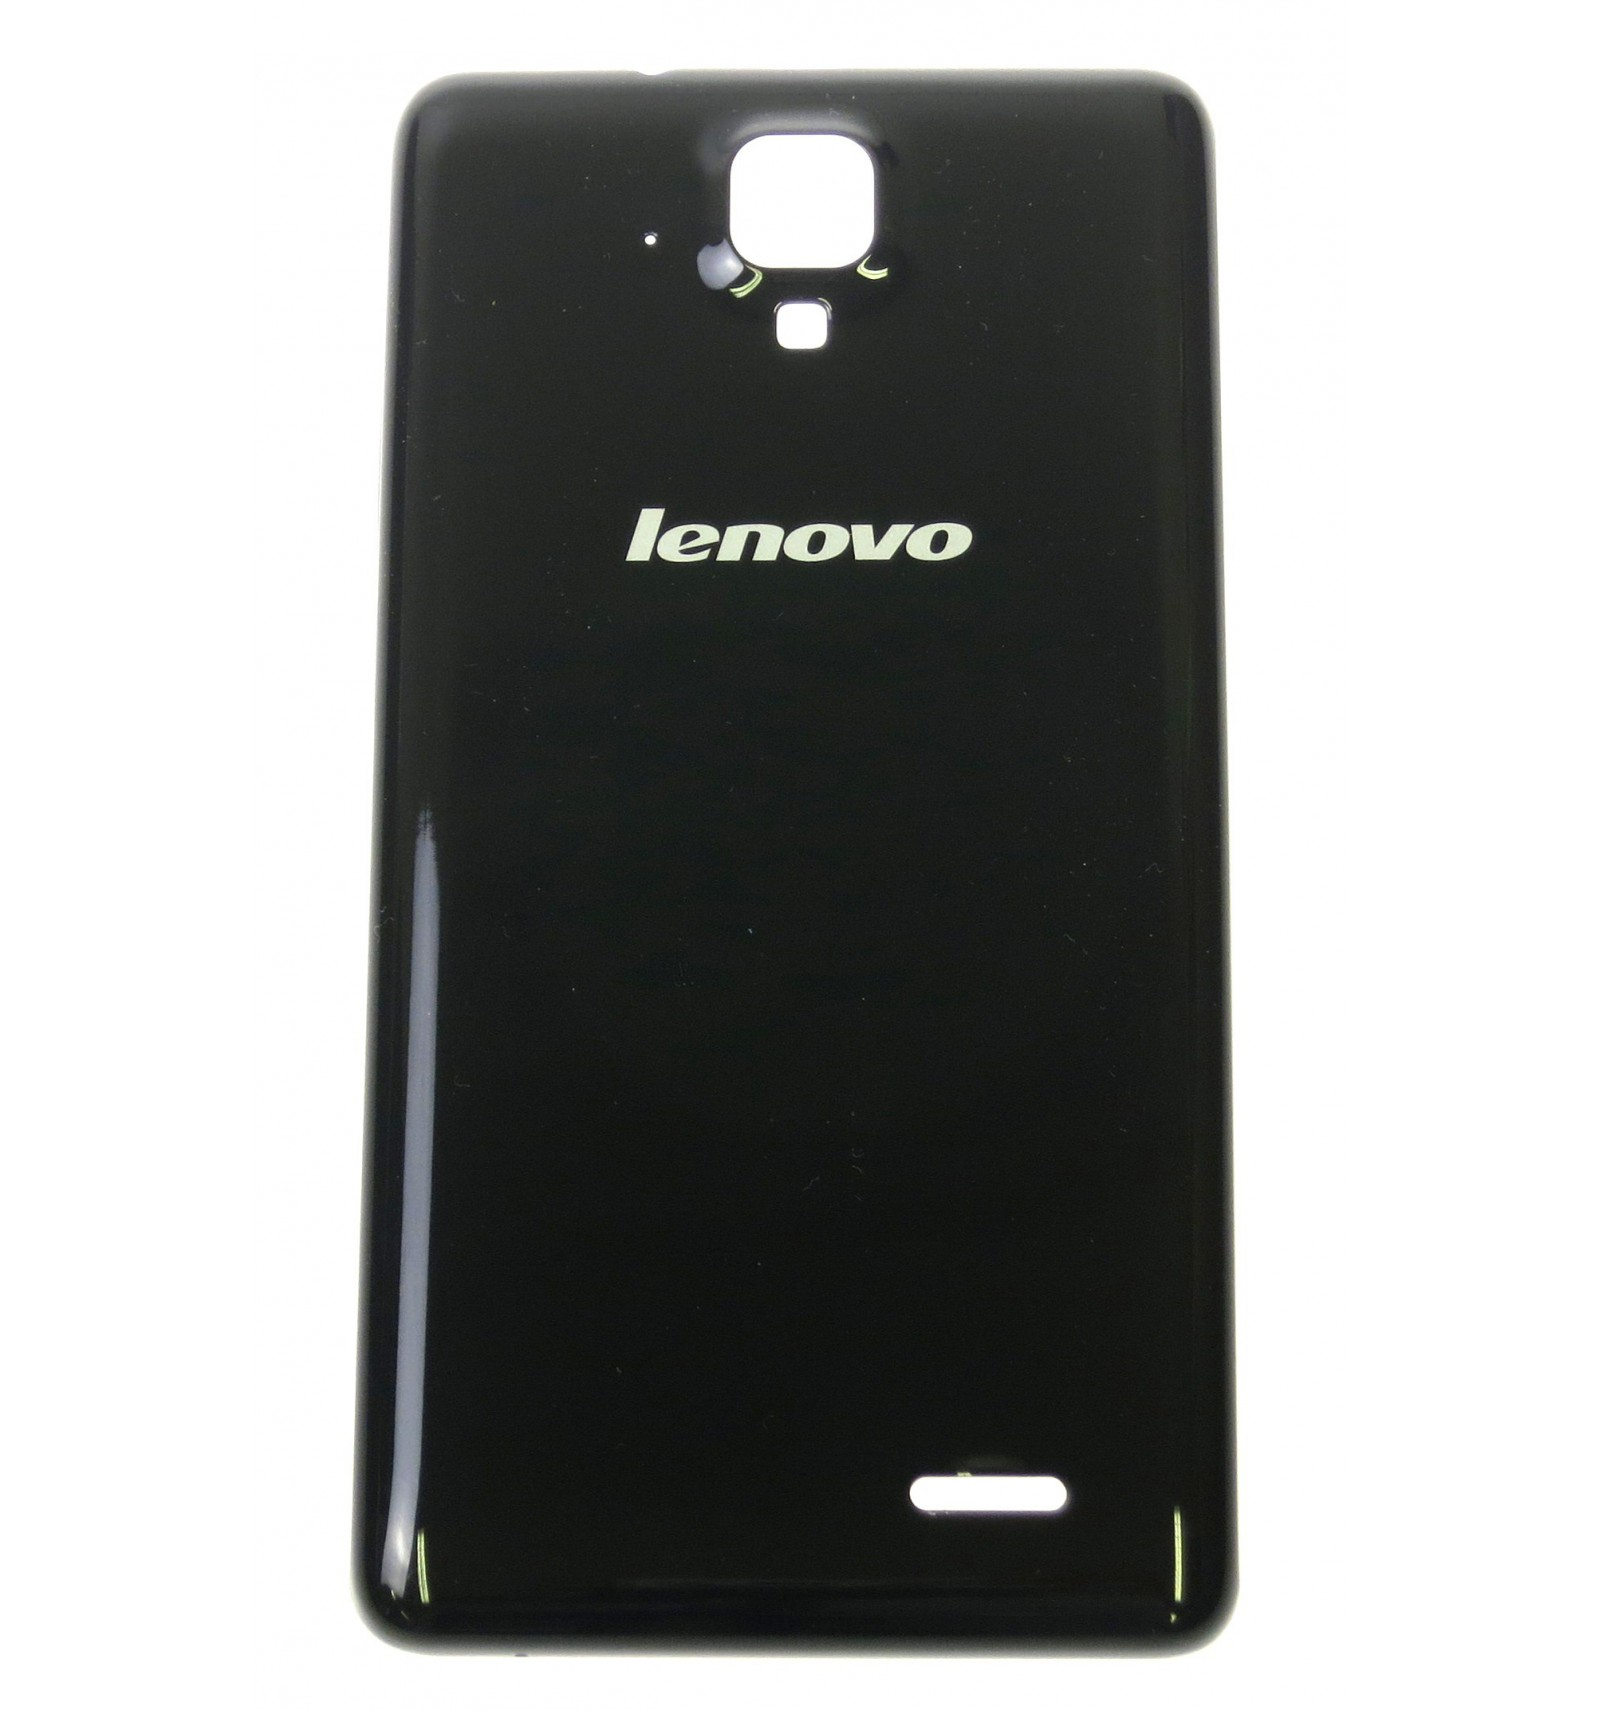 the best attitude bc0d2 867ca Battery cover black replacement for Lenovo A536 | lcdpartner.com